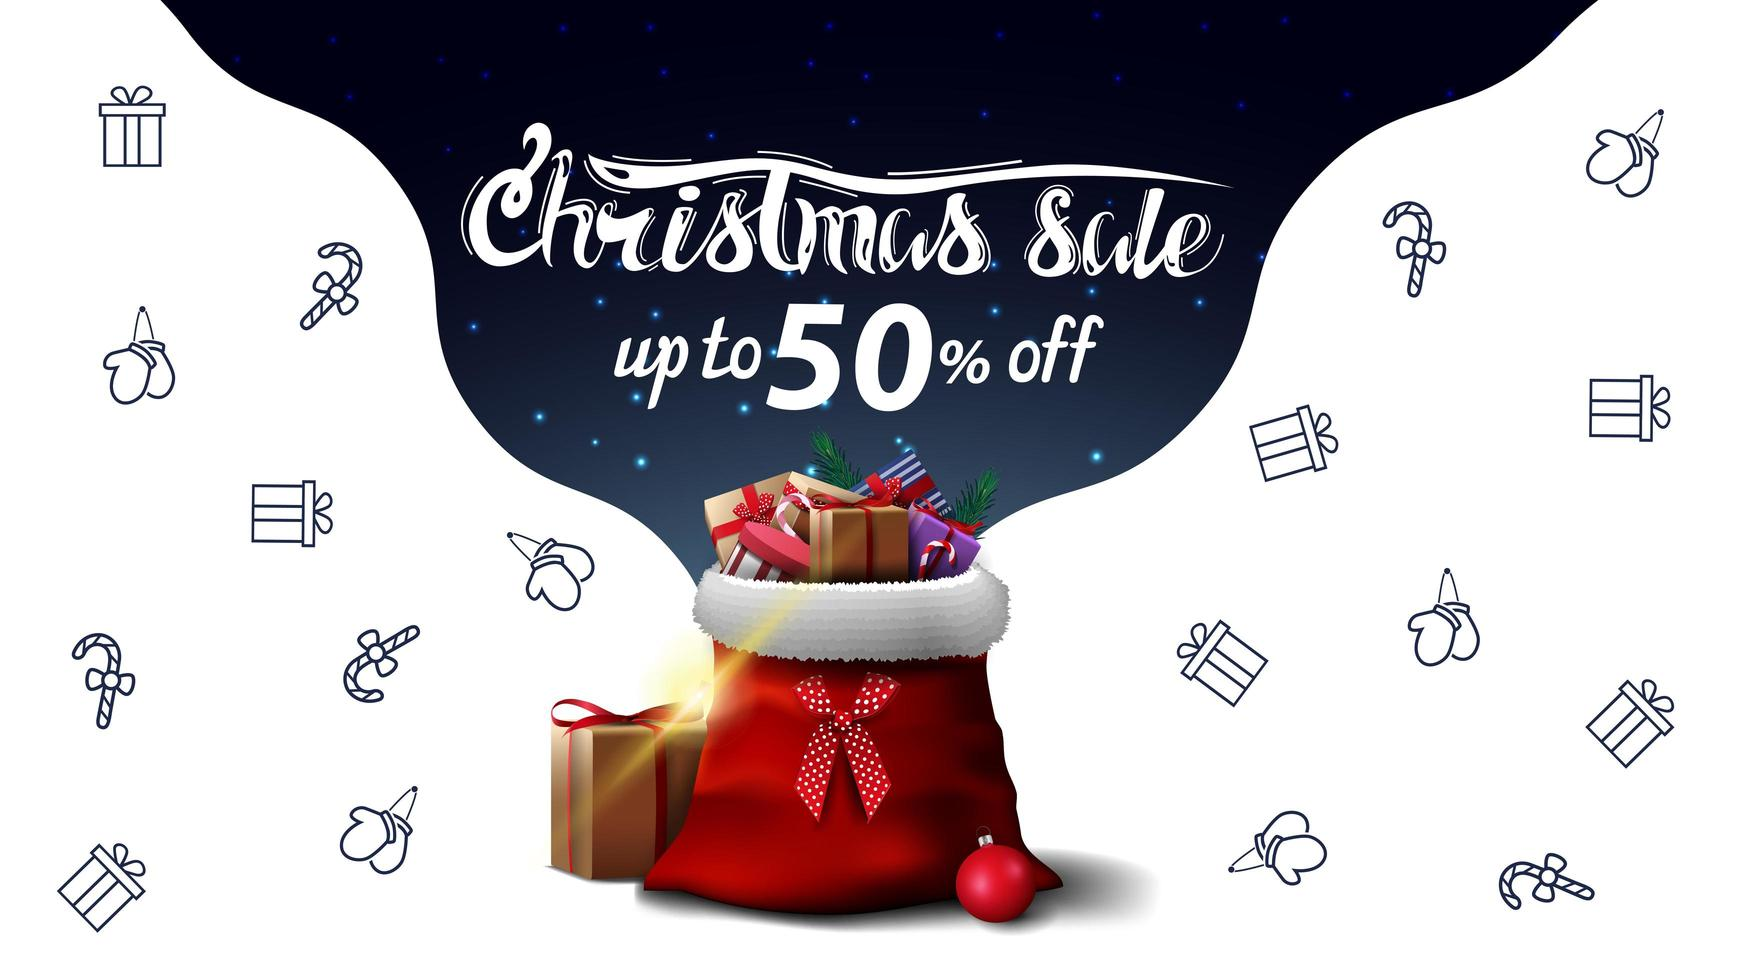 Christmas sale, up to 50 off, beautiful white and blue discount banner with Santa Claus bag with presents and Christmas line icons, space imagination vector